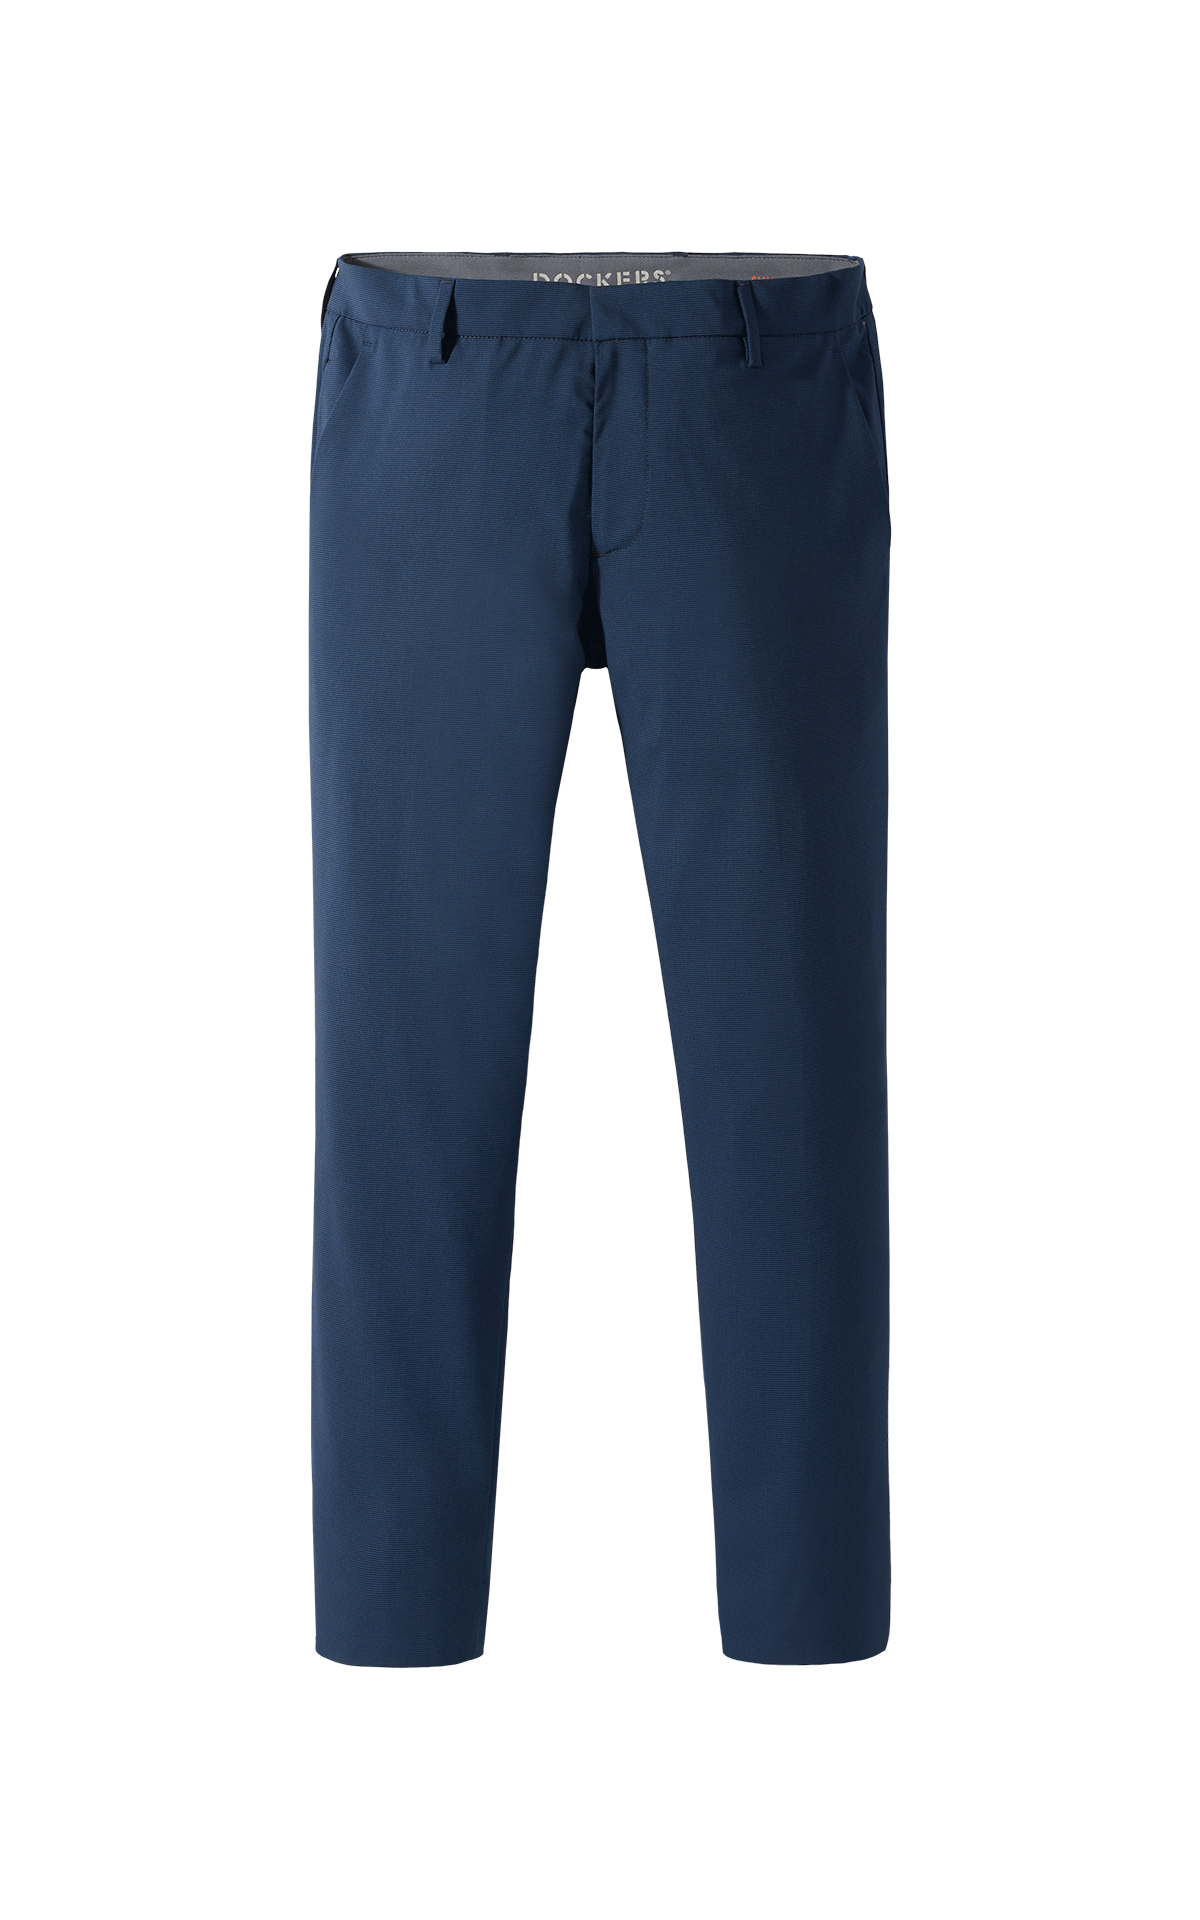 Long navy blue chino pants for man Dockers